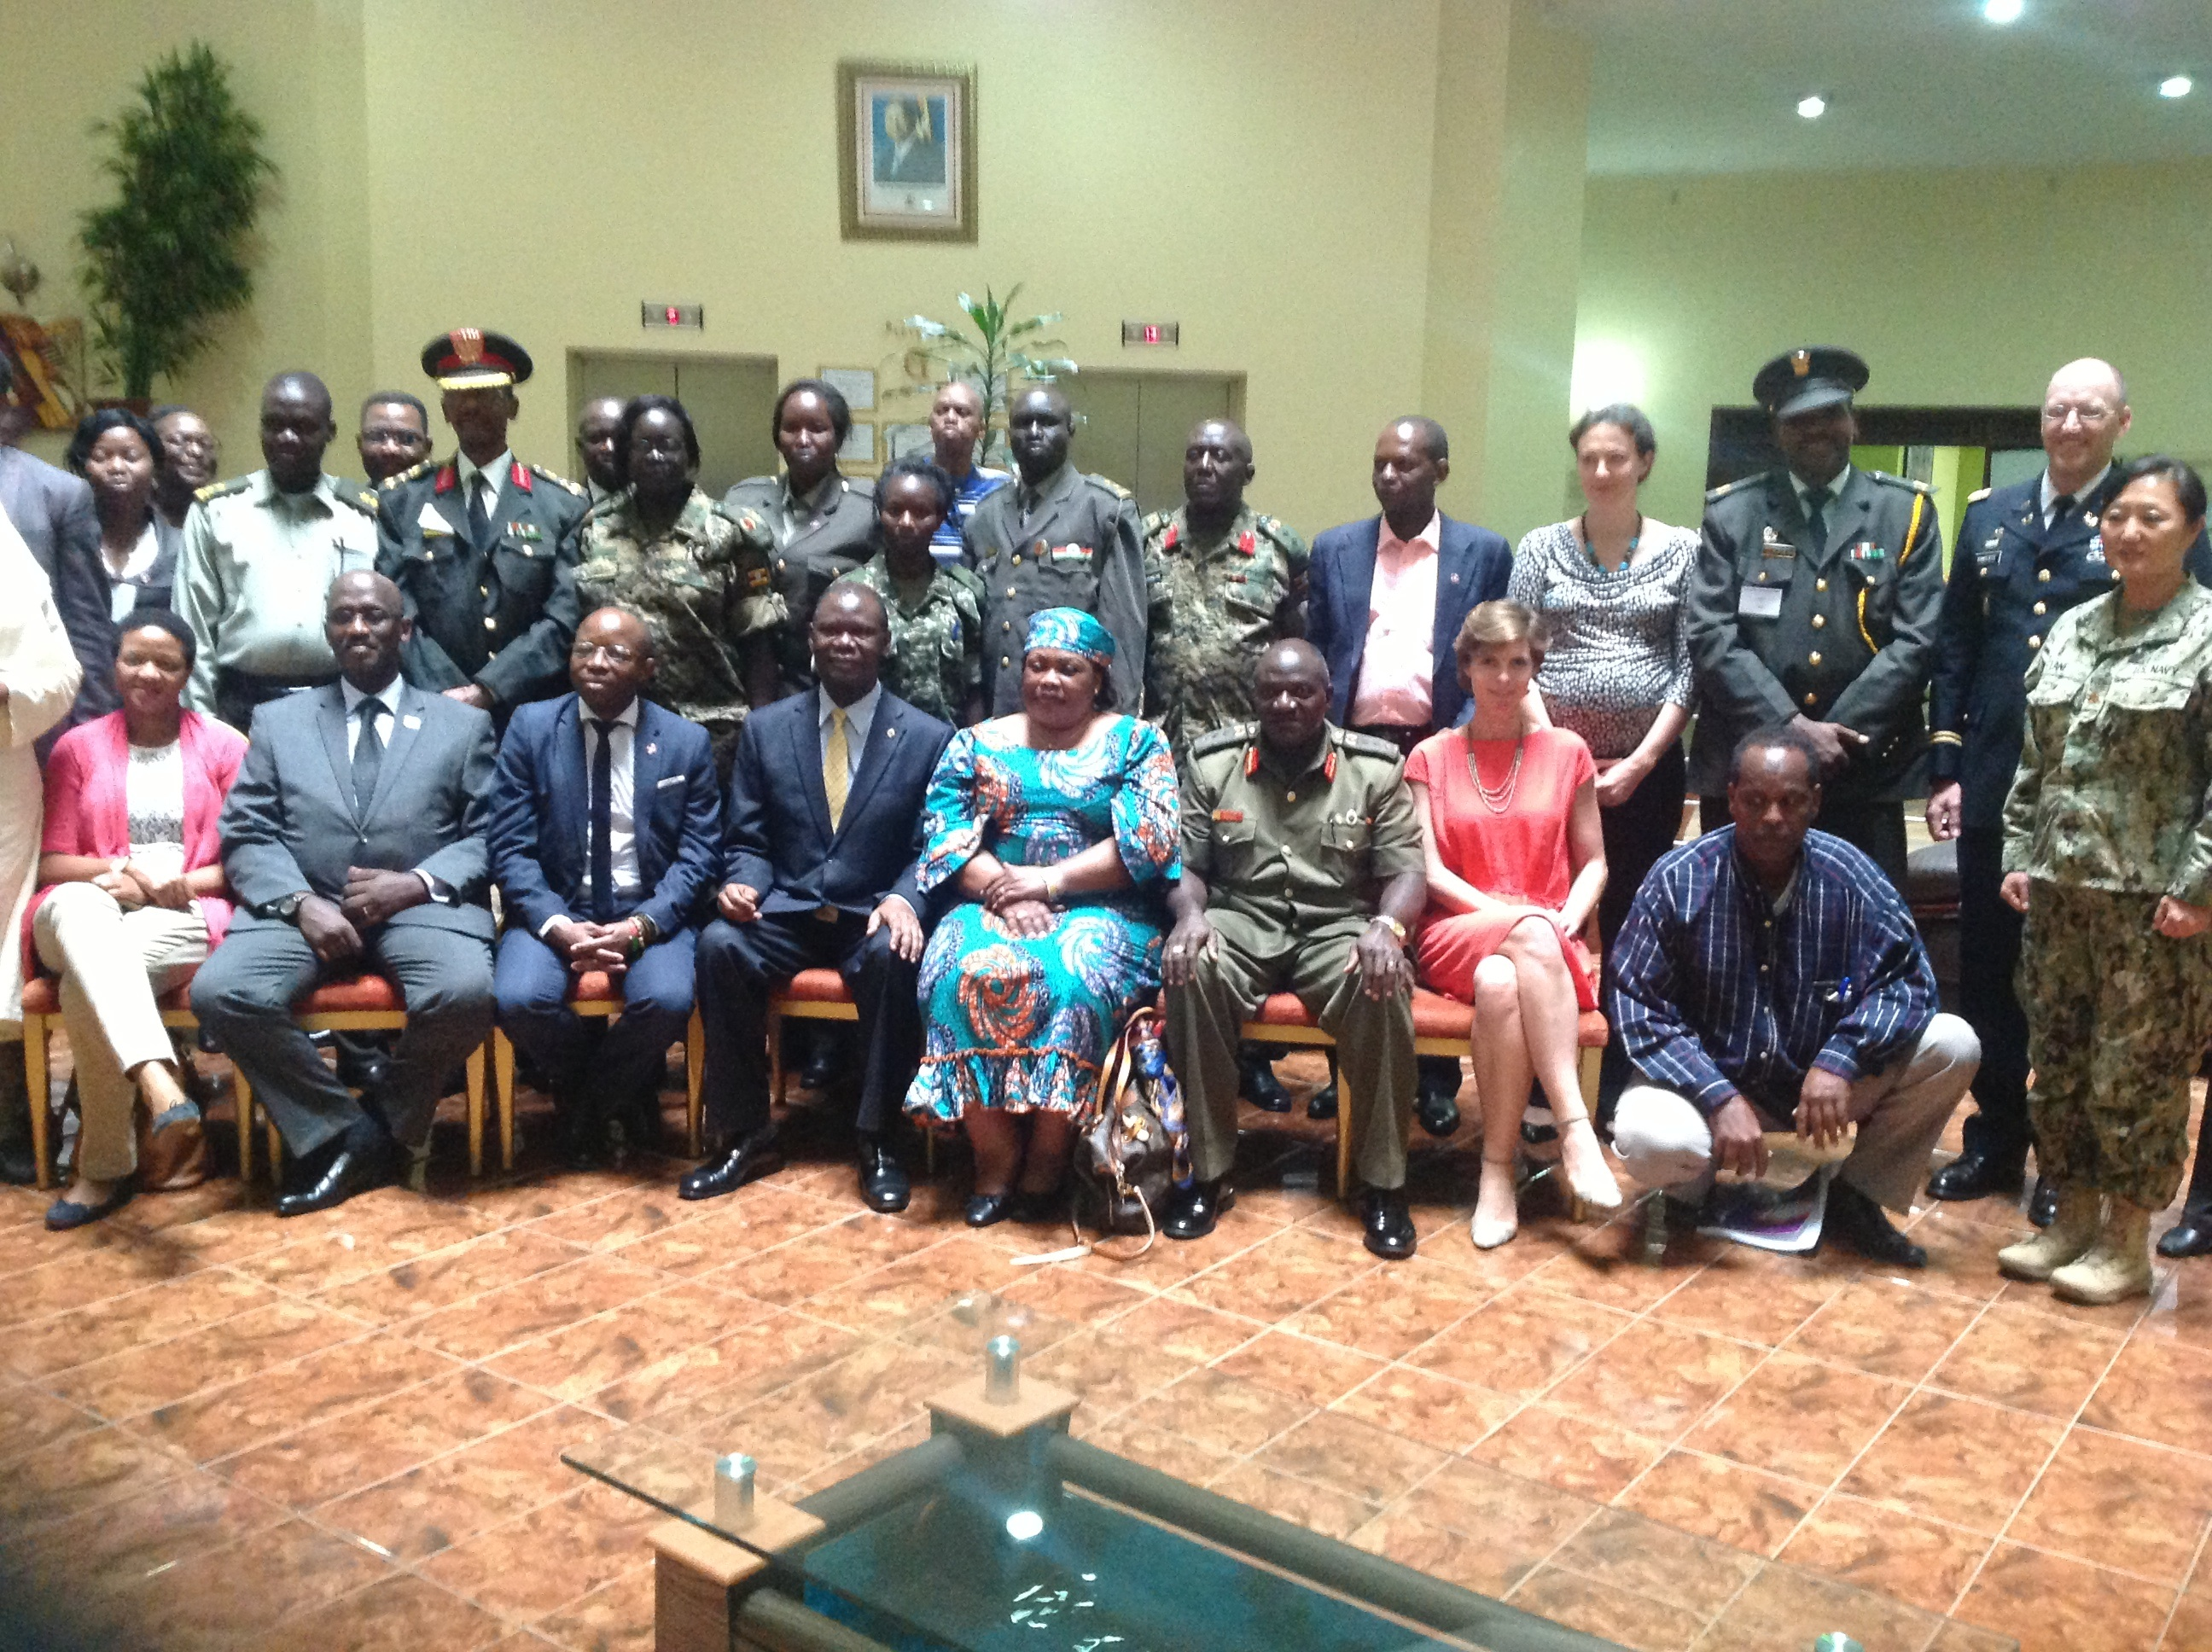 Members of the military justice system attend training at the International Conference on the Great Lakes Region Regional Training Facility In Kampala, Uganda, Aug. 10-12, 2015.  The training addressed sexual violence within the military justice system, including collecting evidence and procedures for bringing cases to trial in the military. (Courtesy photo)